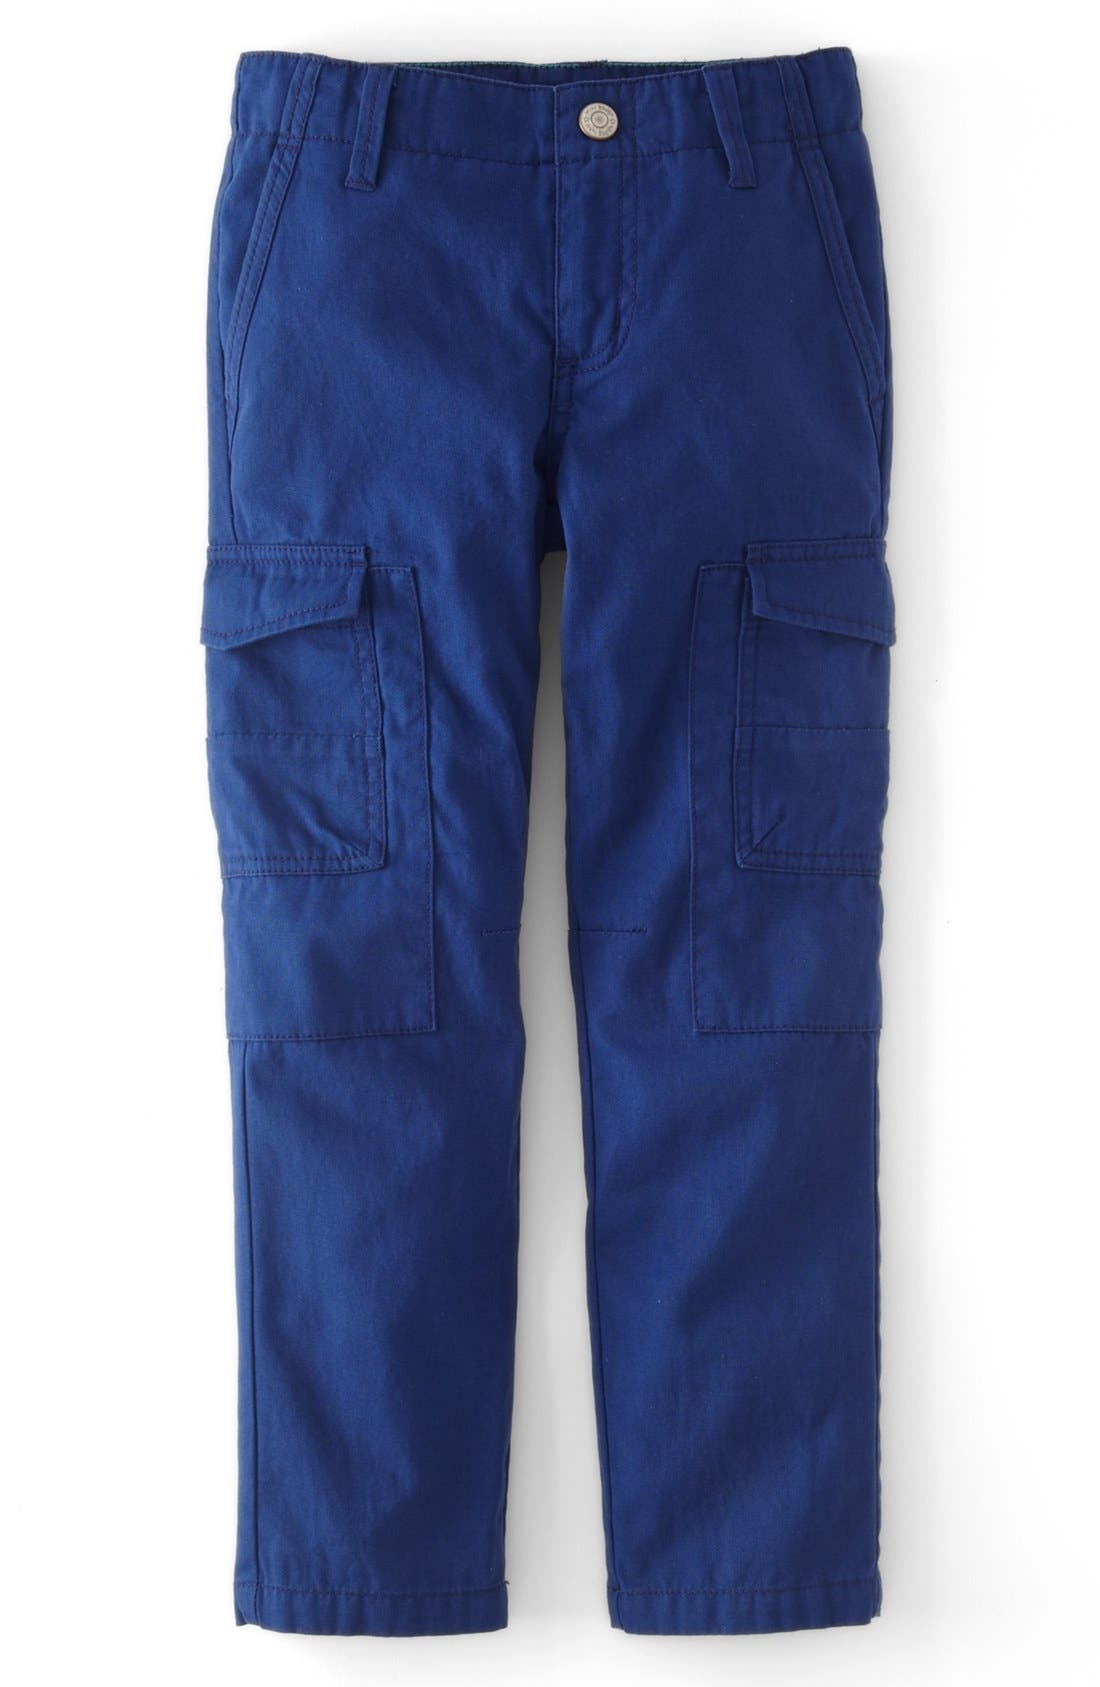 Main Image - Mini Boden Slim Fit Cargo Pants (Toddler Boys, Little Boys & Big Boys)